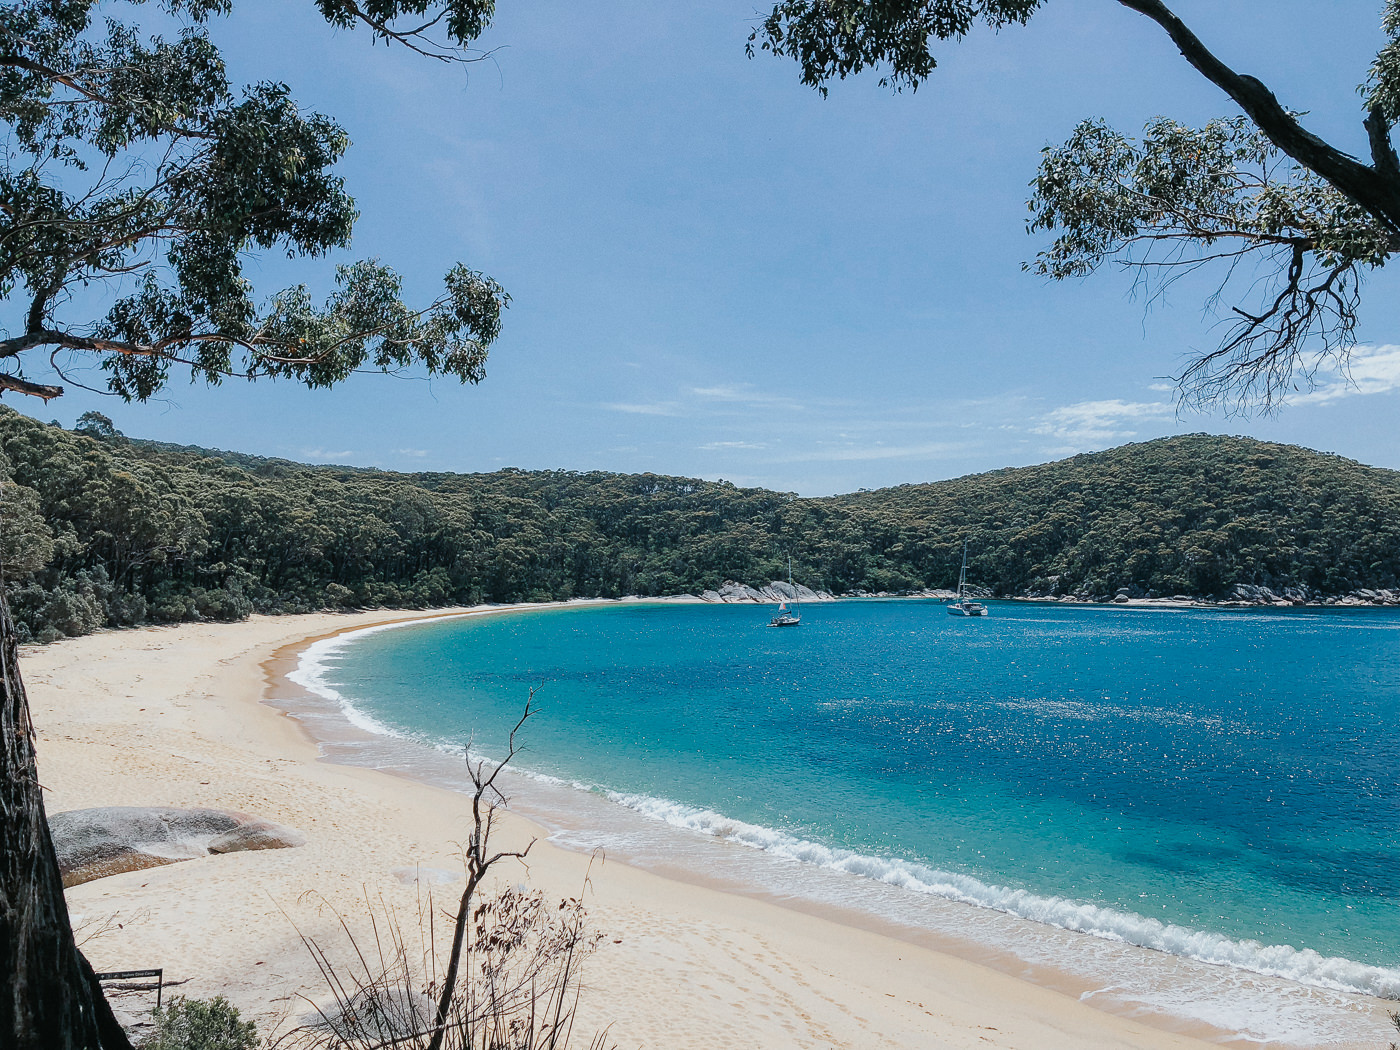 refuge cove in Wilsons Prom National Park - Beach and Bay